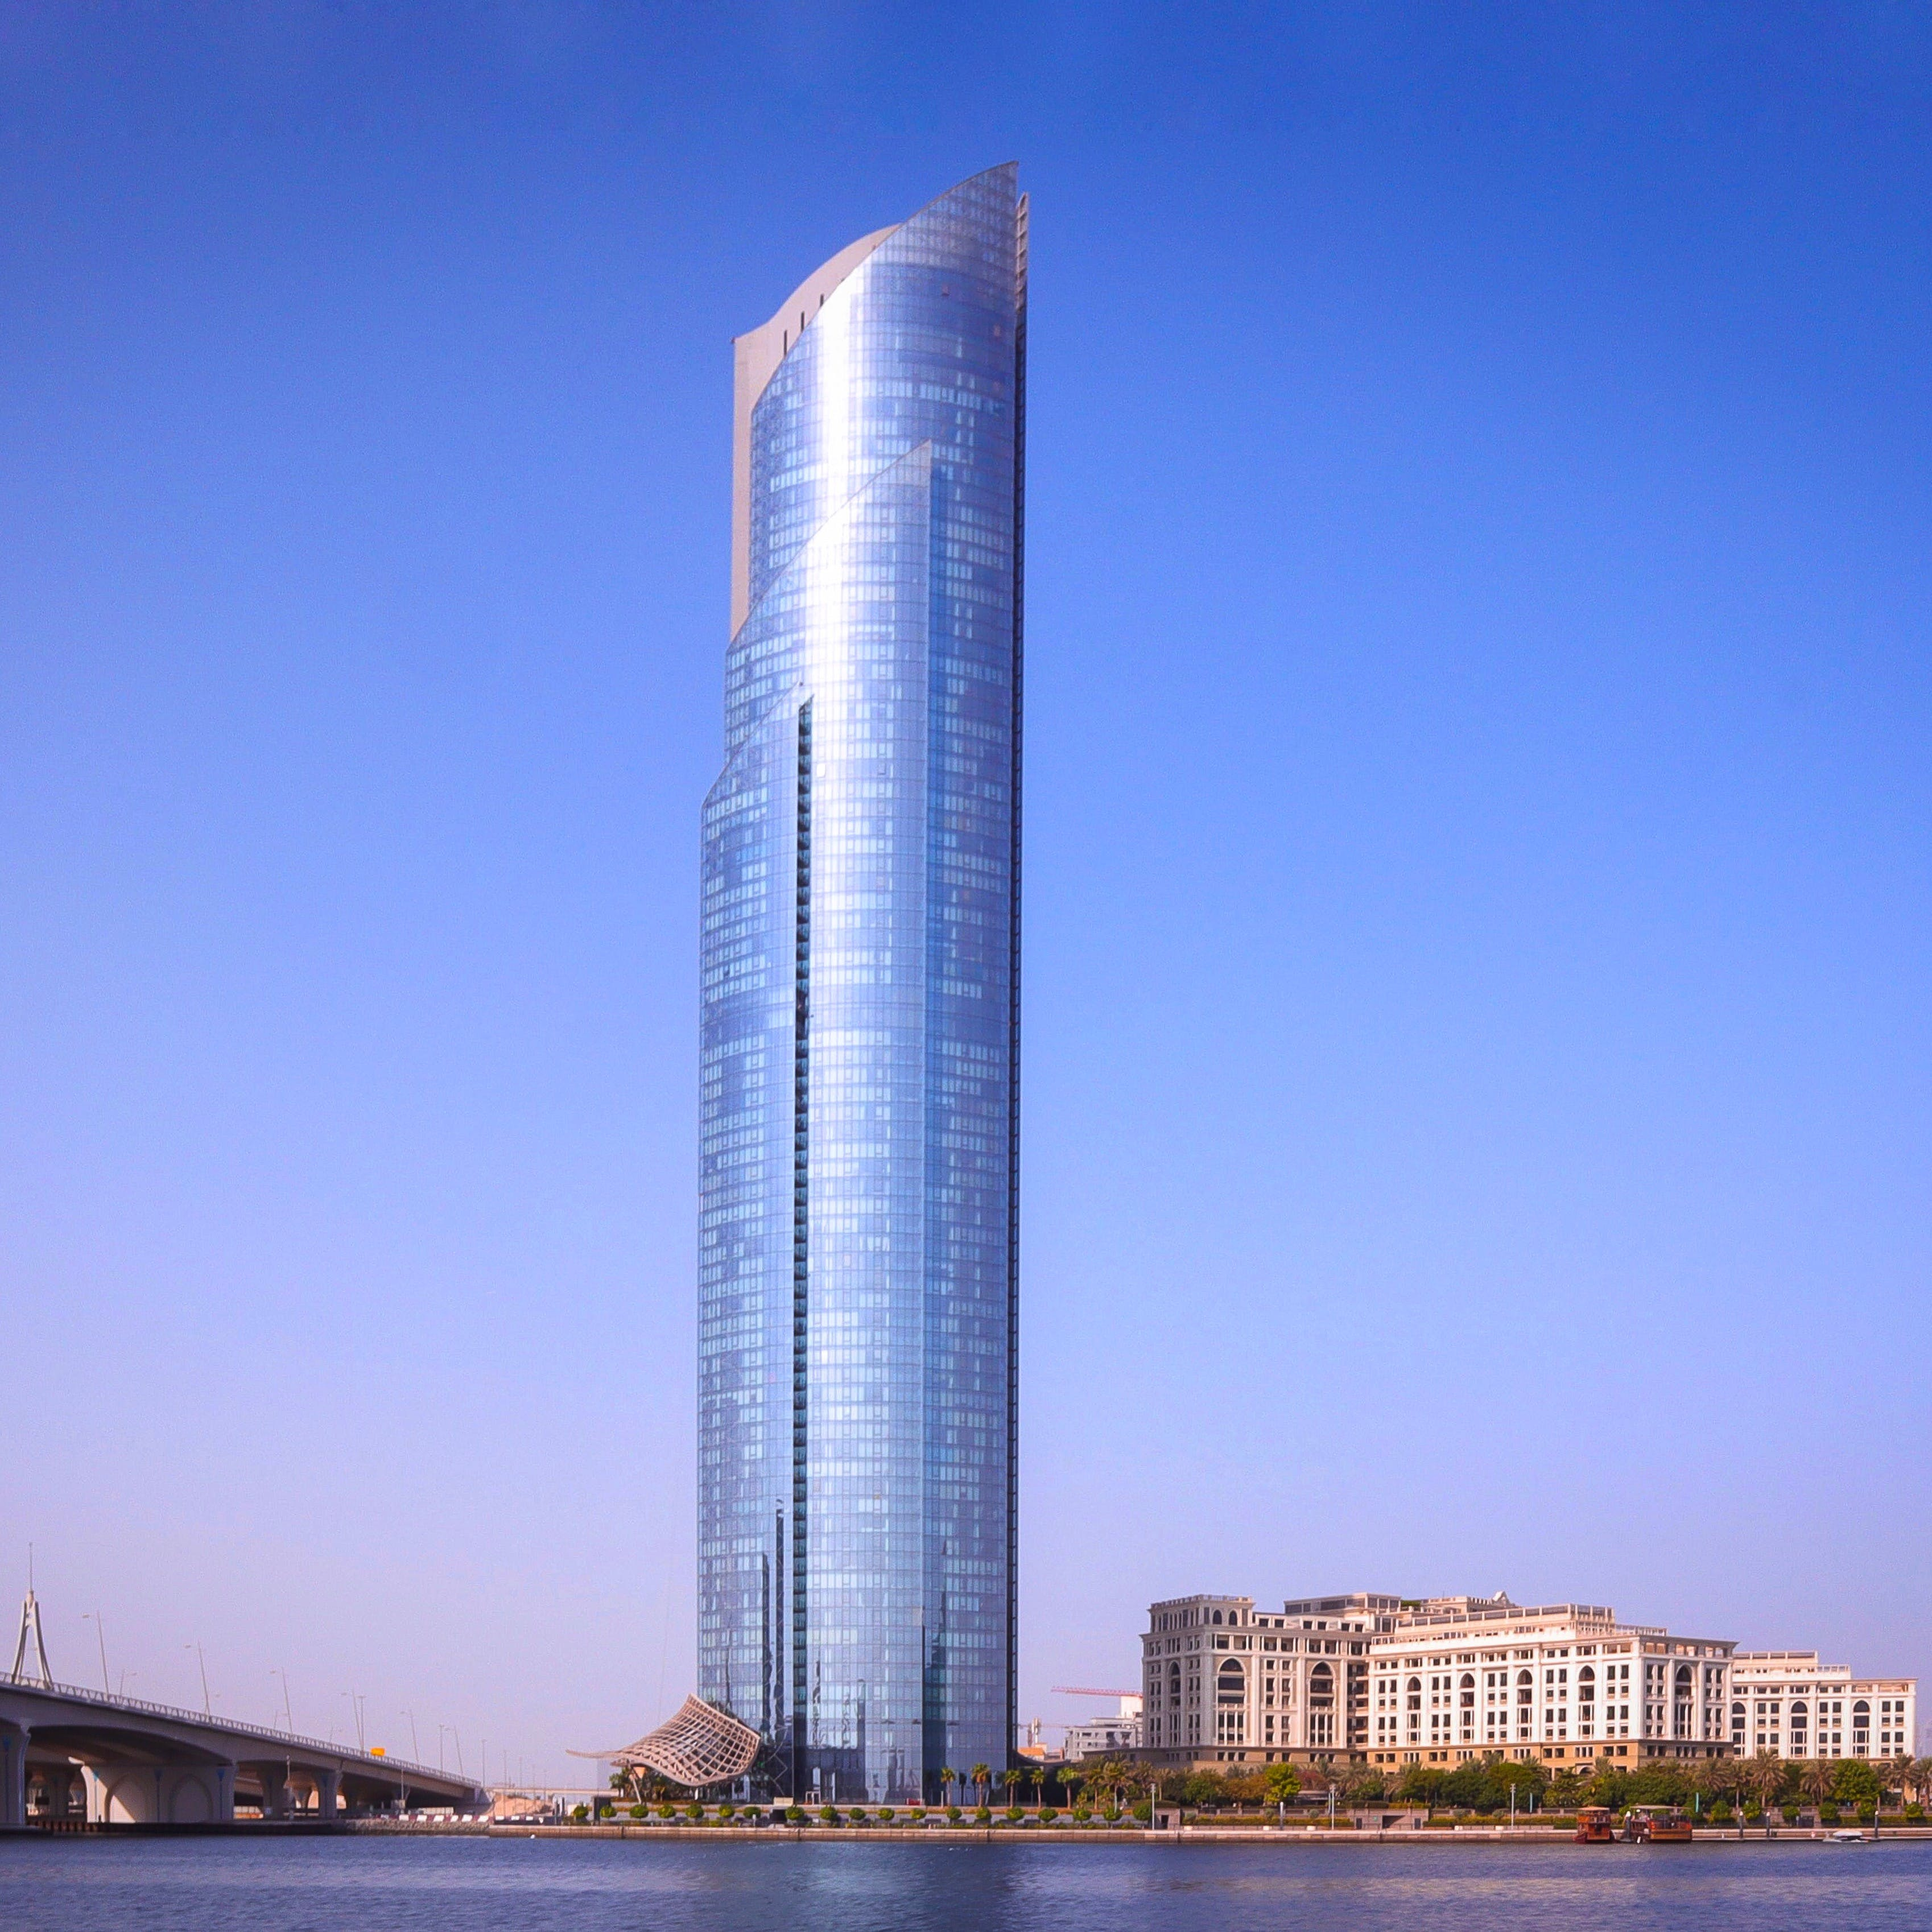 High-rise Glass Building Near Body of Water